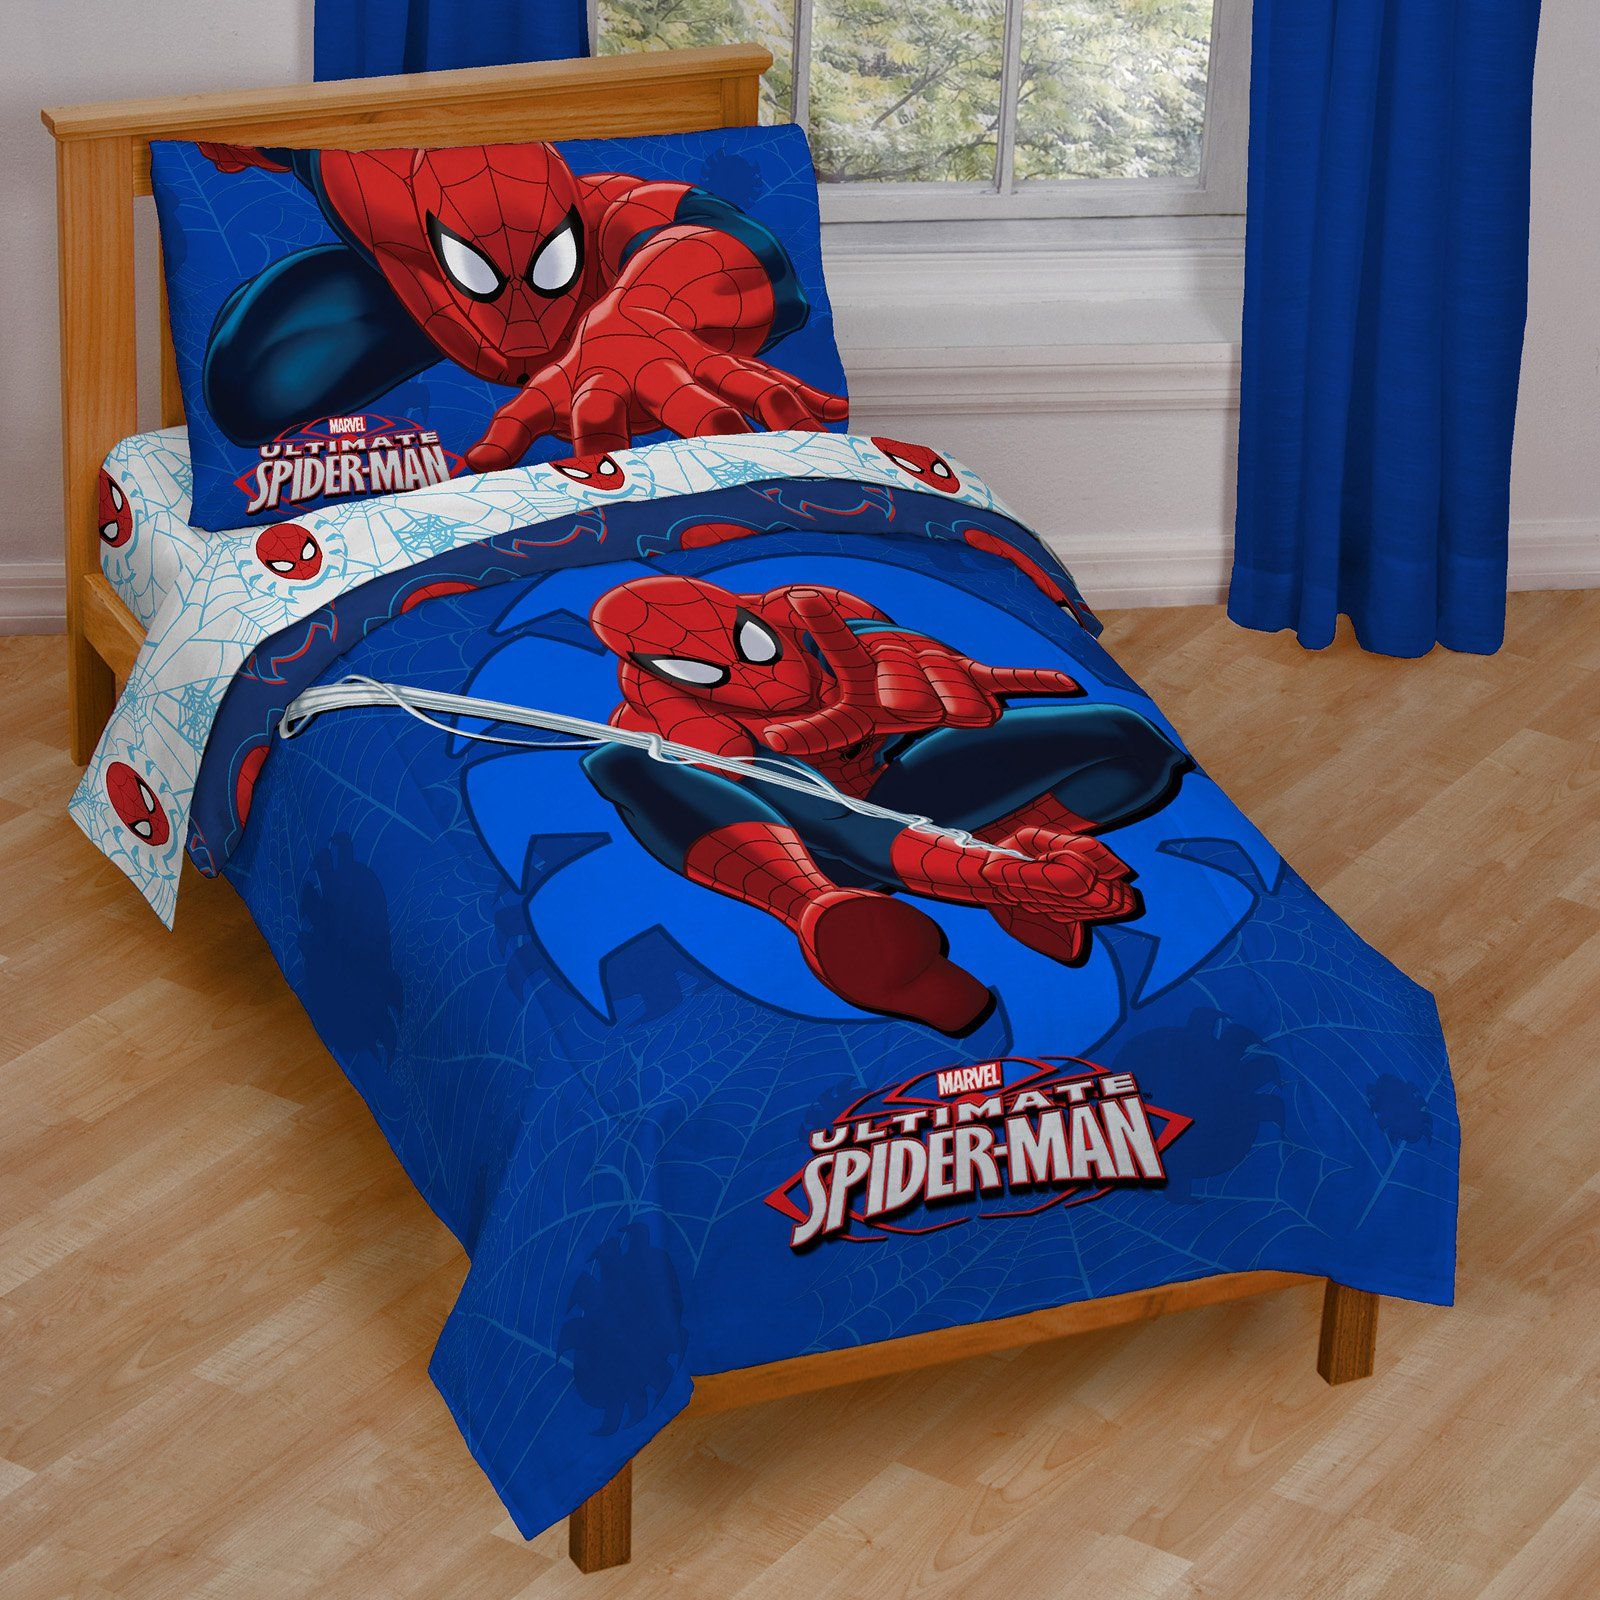 spiderman decals bedroom a decoration cover twin box wall halo toddler sets free size bedding bed avengers duvet shipping full cotton marvel set design today in canada piece bag room comforter